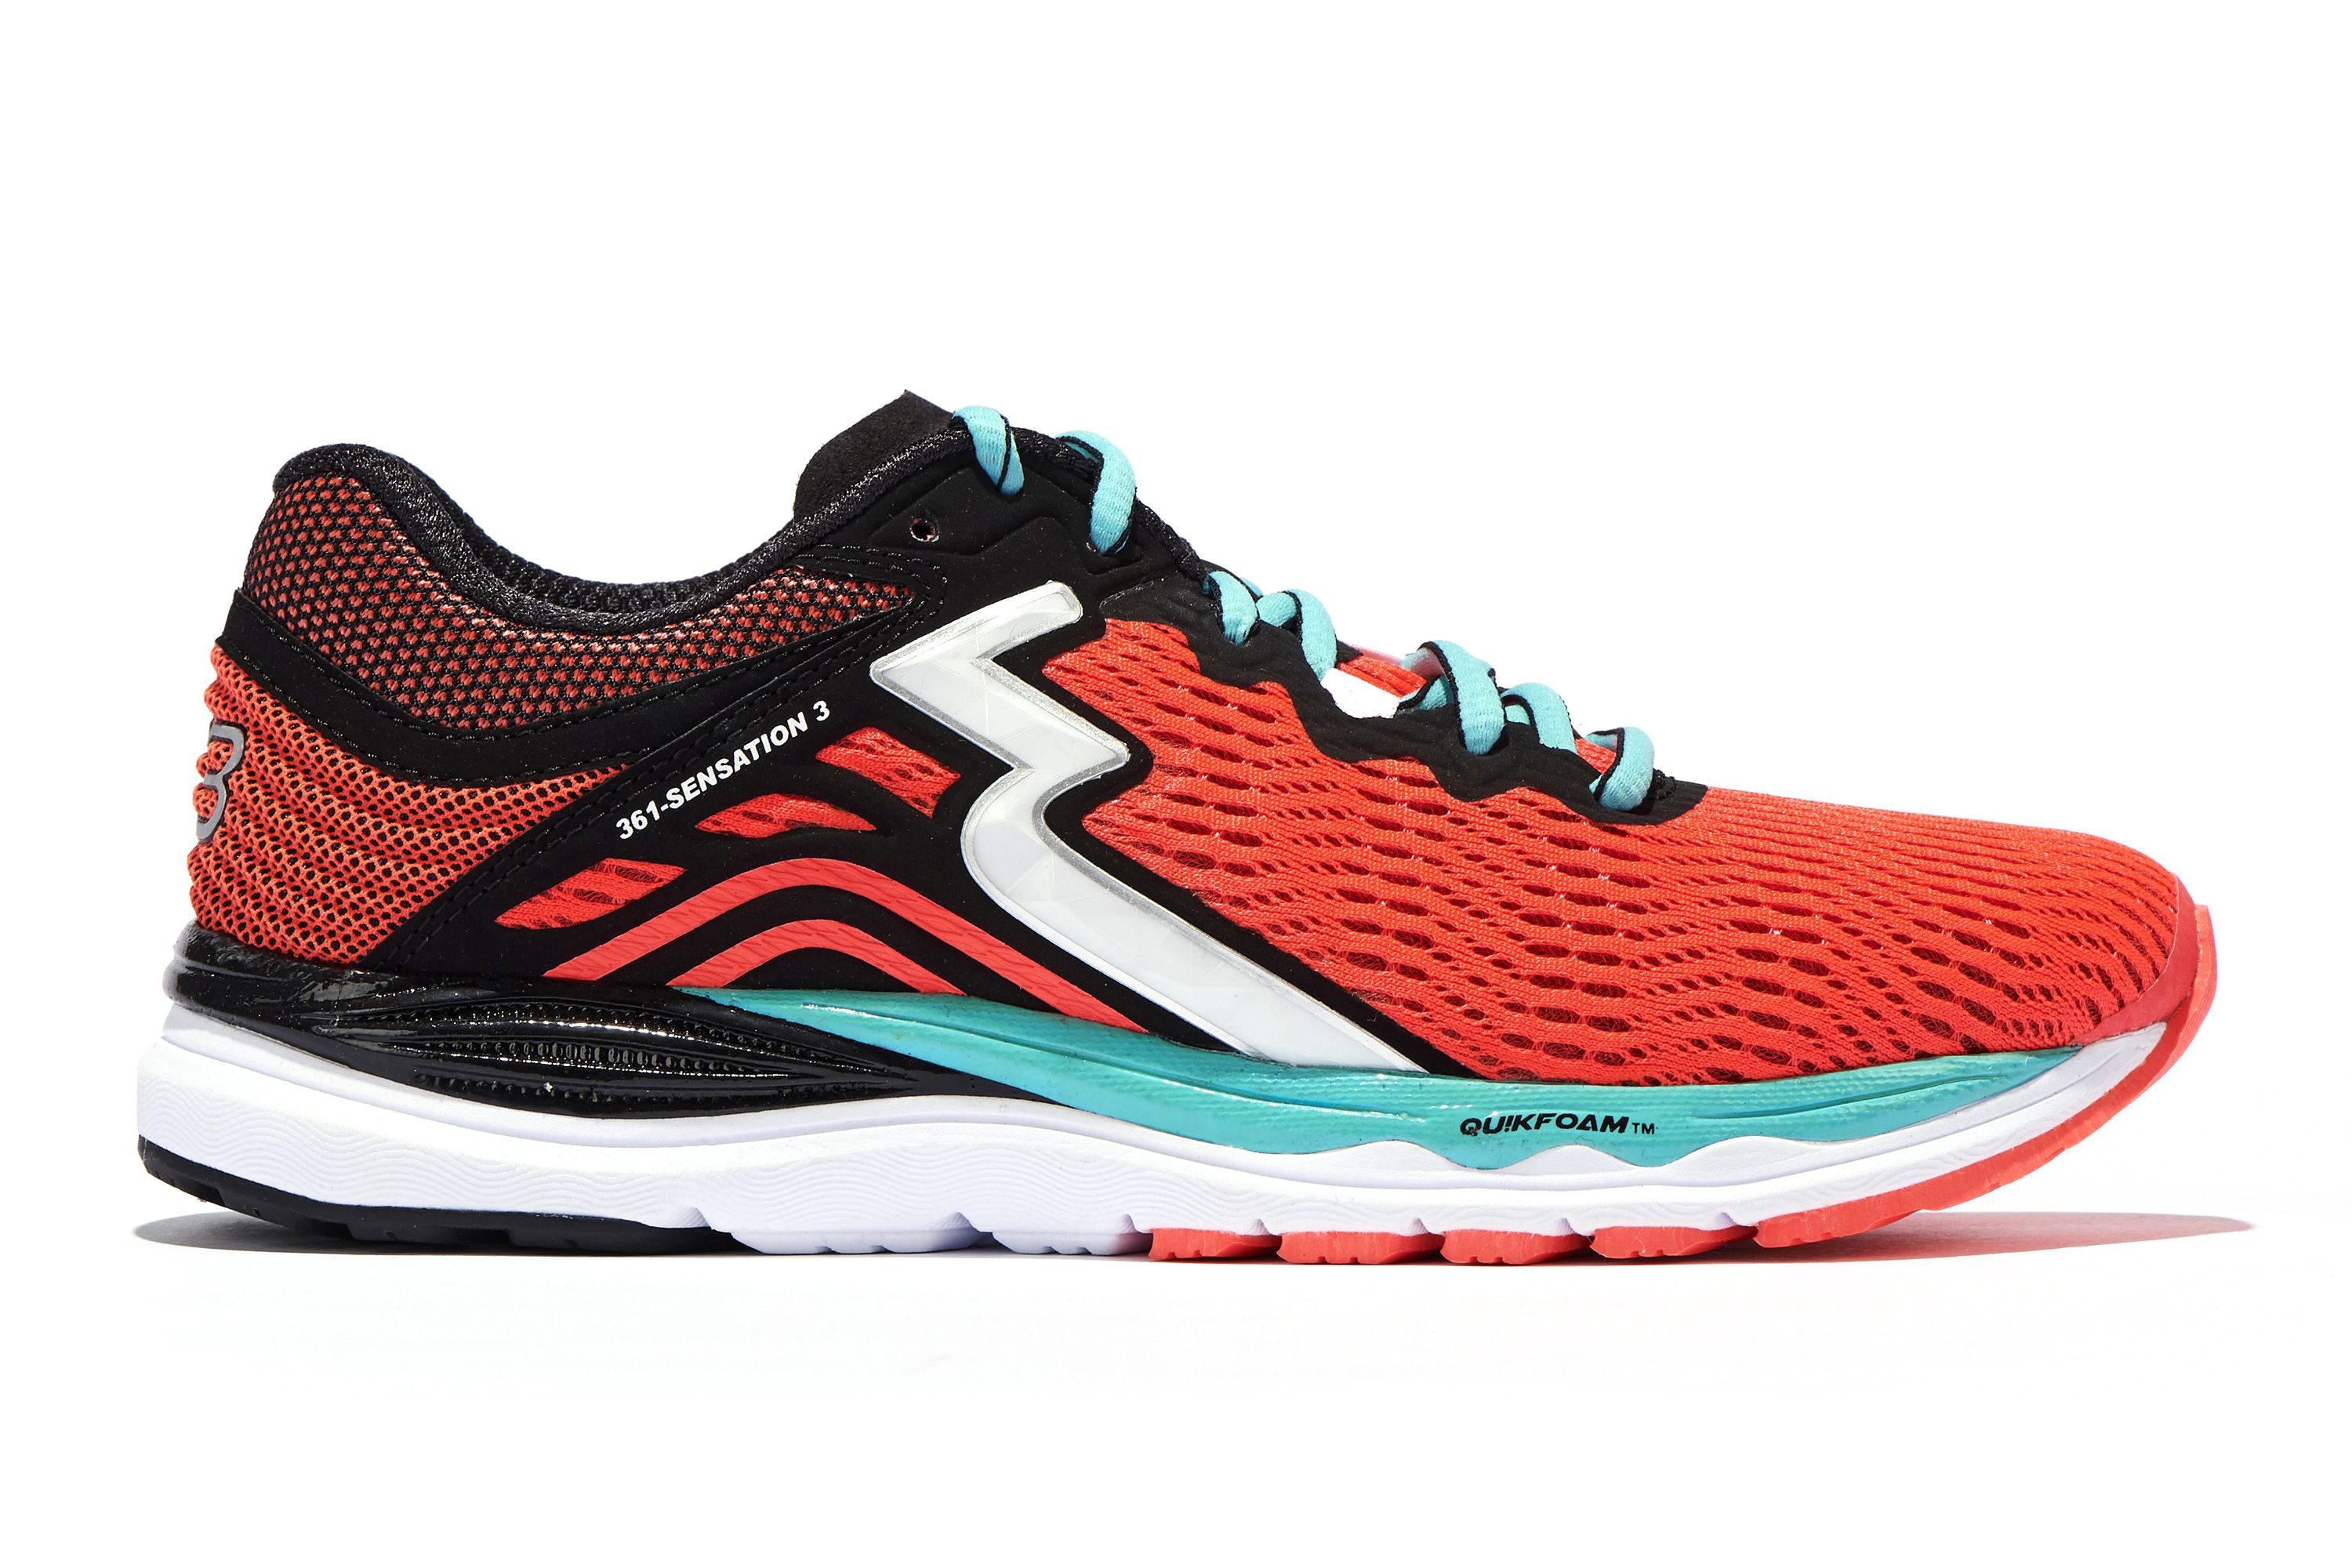 Best Running Sneakers Cushioned 2019 Comfortable Most Shoes frafw5q